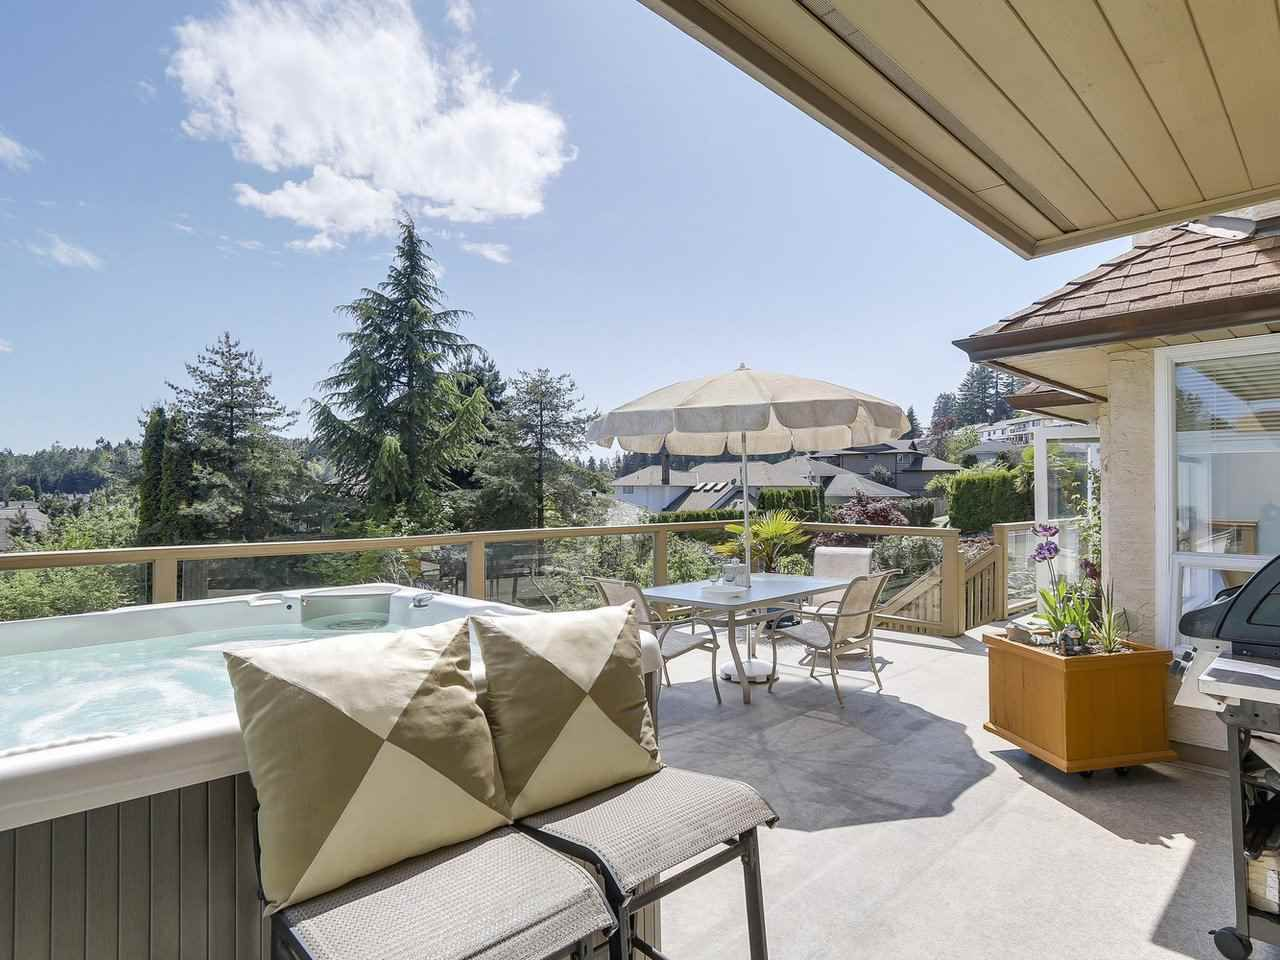 Photo 11: Photos: 737 East 29th Street, North Vancouver